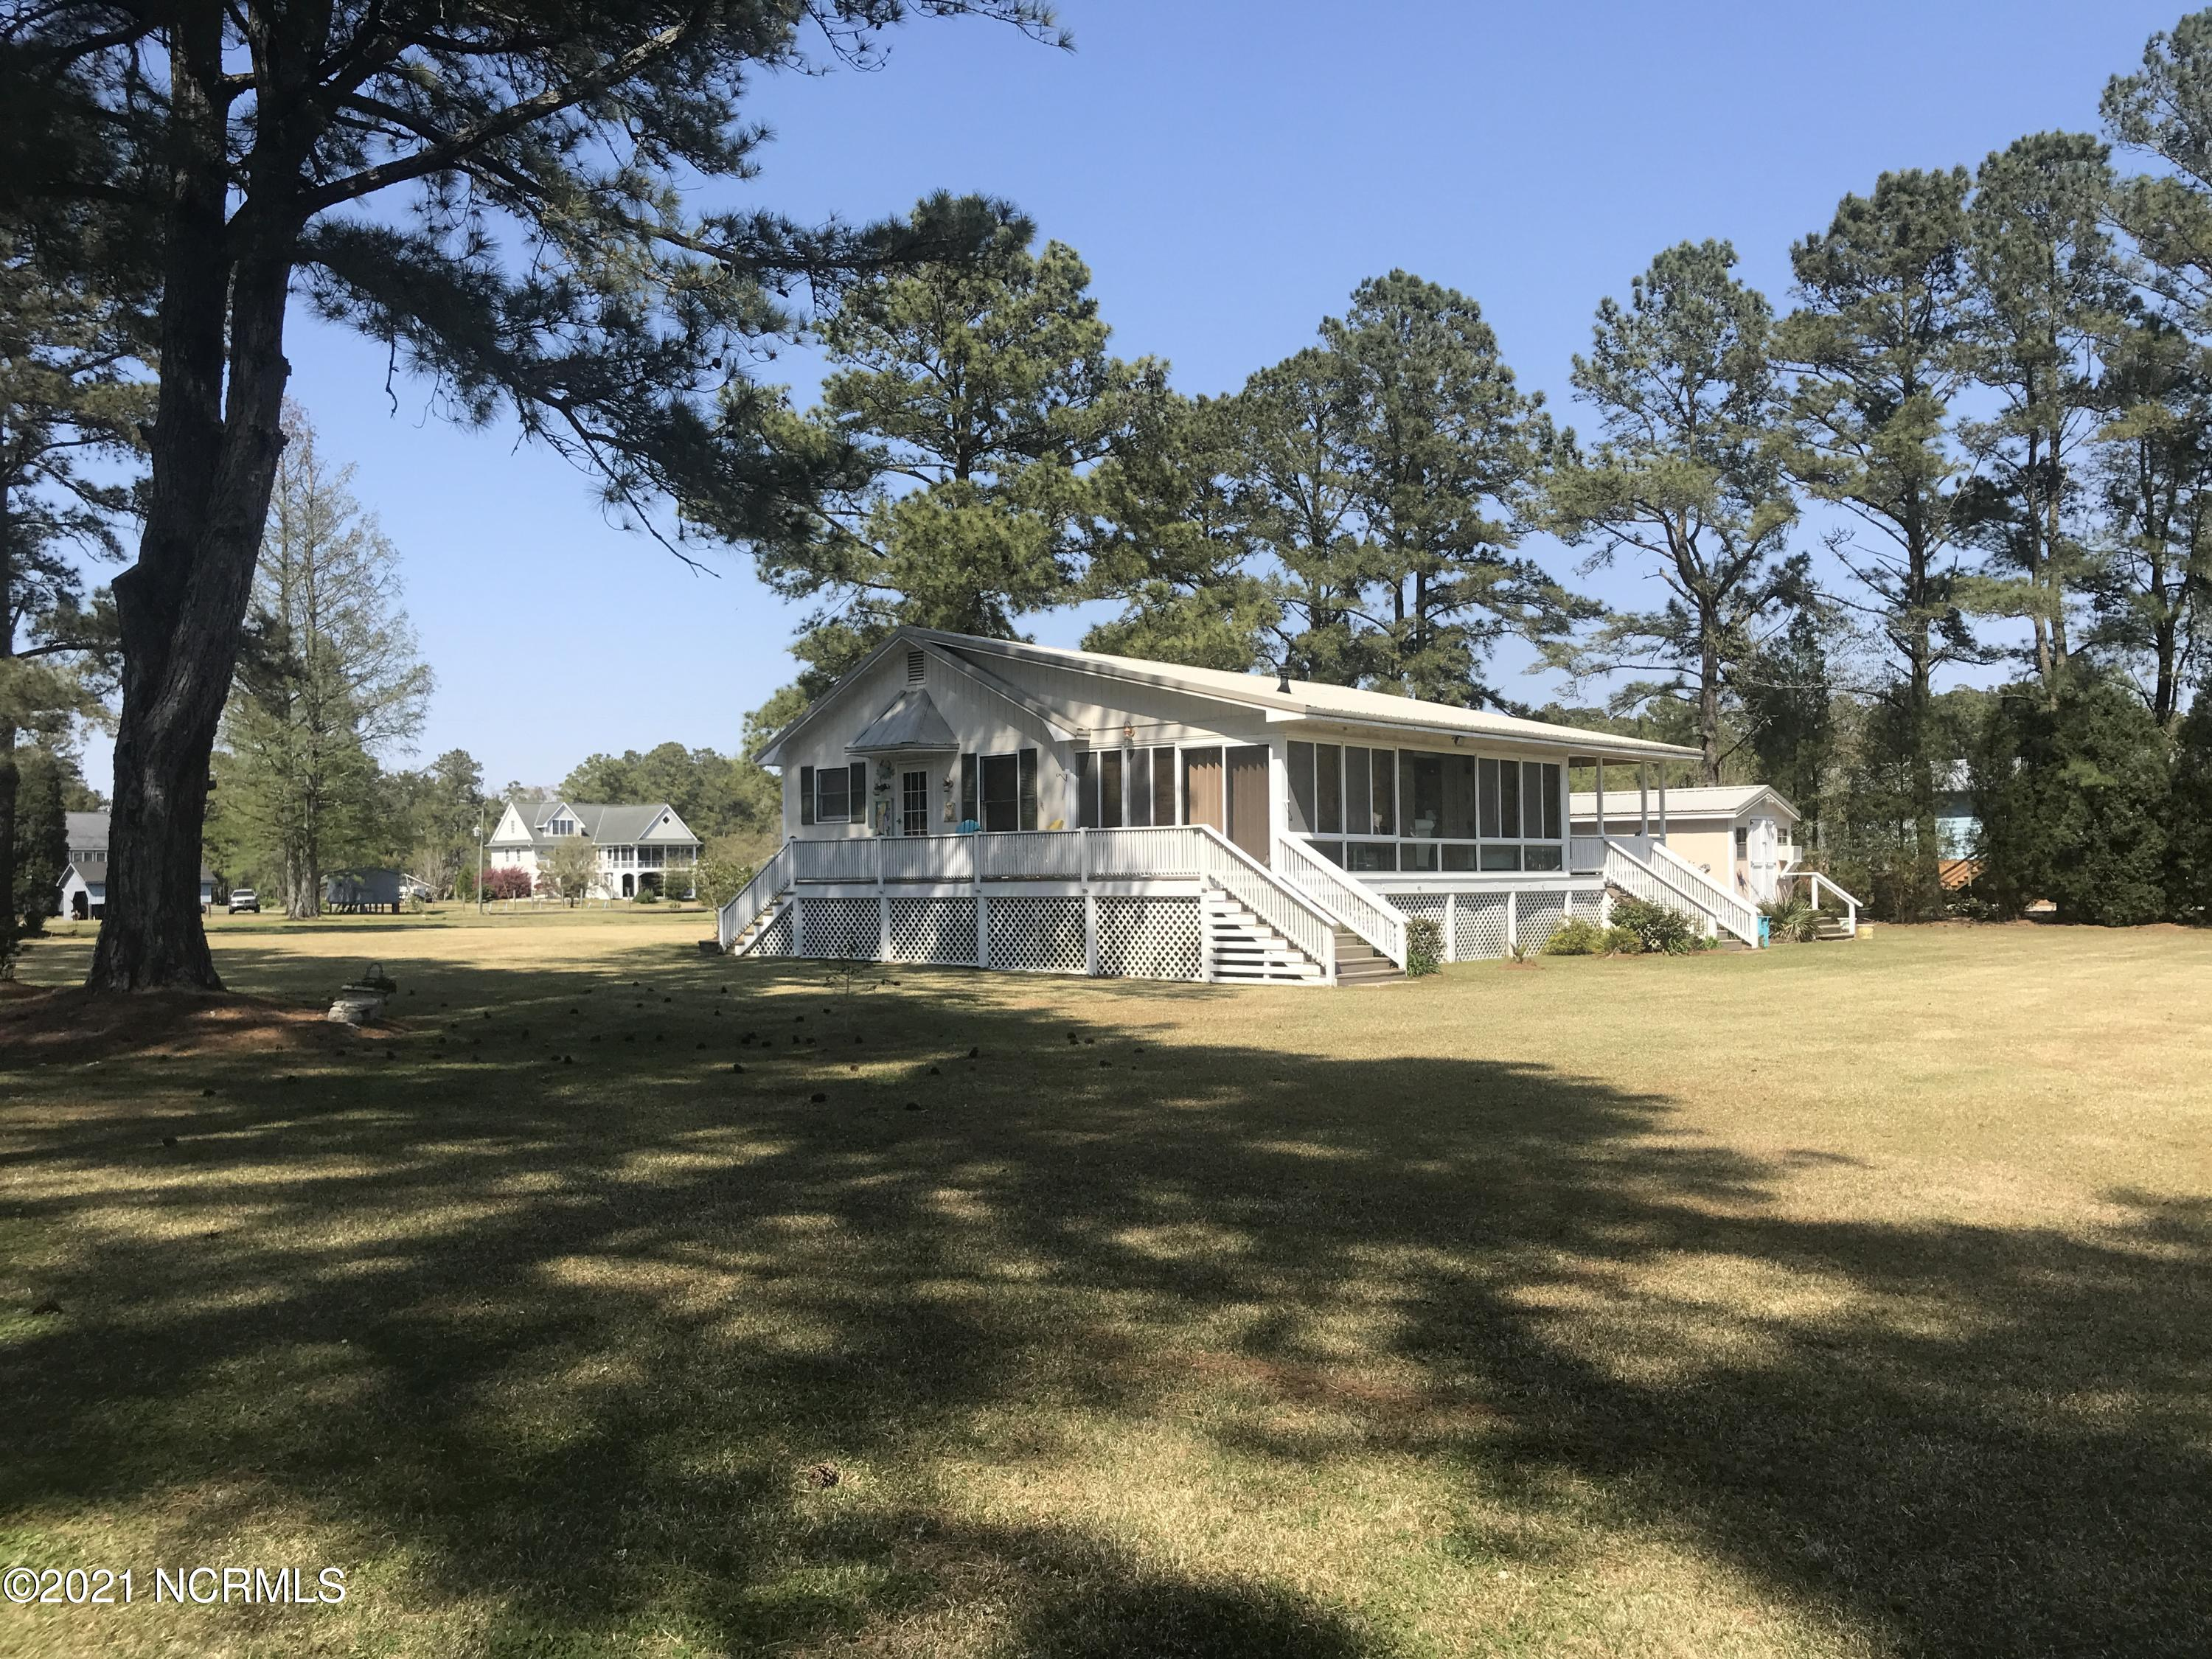 36 Oland Drive, Belhaven, North Carolina 27810, 2 Bedrooms Bedrooms, 5 Rooms Rooms,2 BathroomsBathrooms,Single family residence,For sale,Oland,100265352